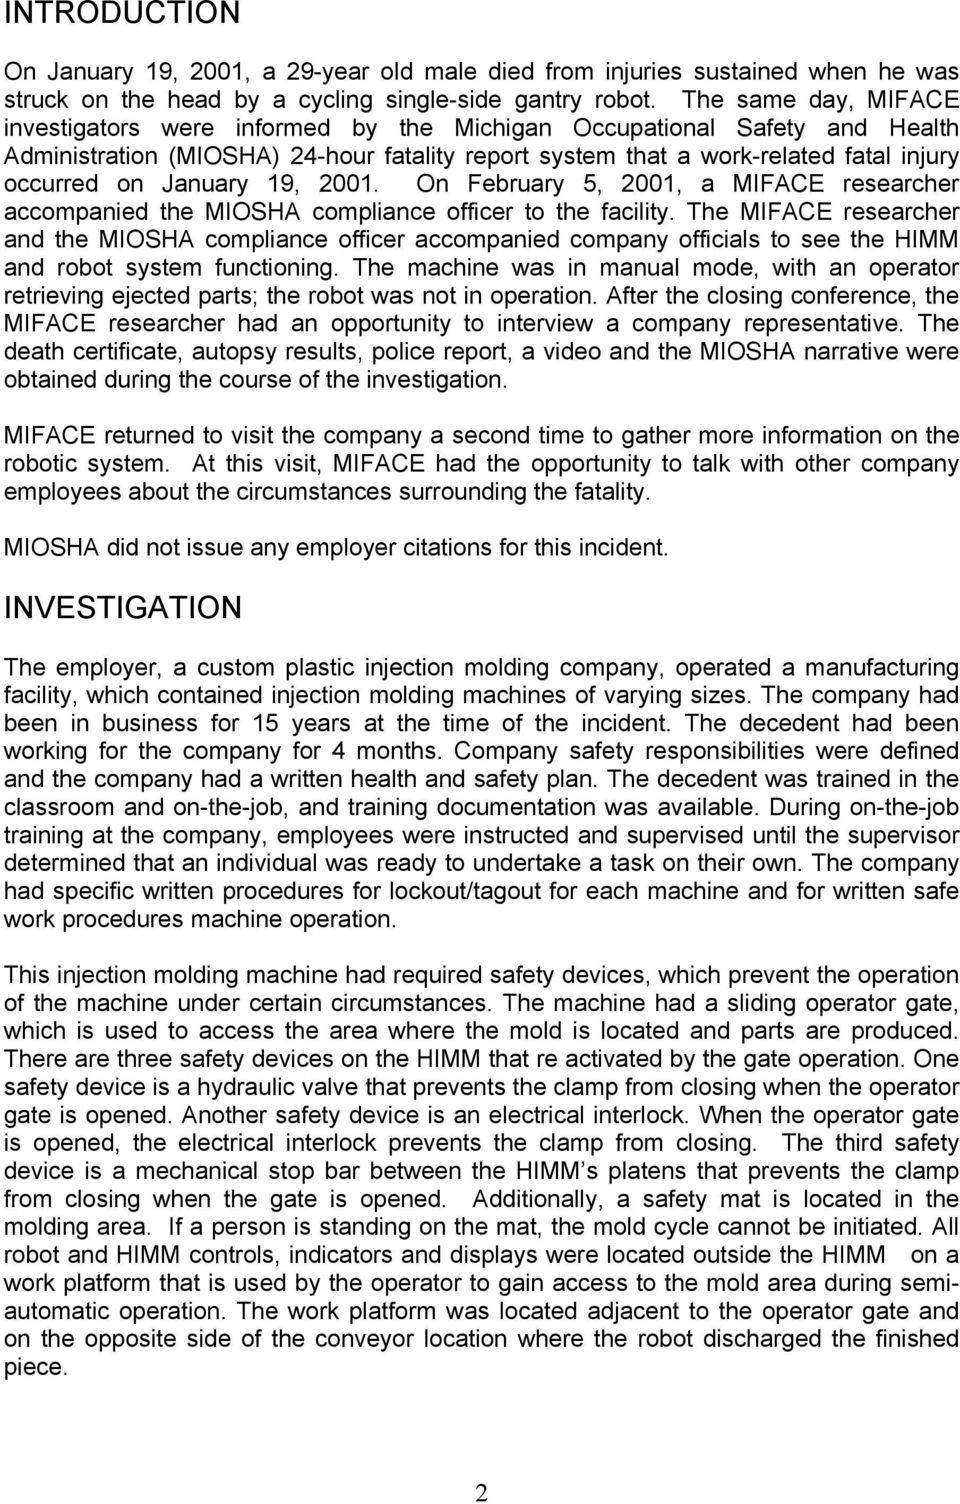 January 19, 2001. On February 5, 2001, a MIFACE researcher accompanied the MIOSHA compliance officer to the facility.